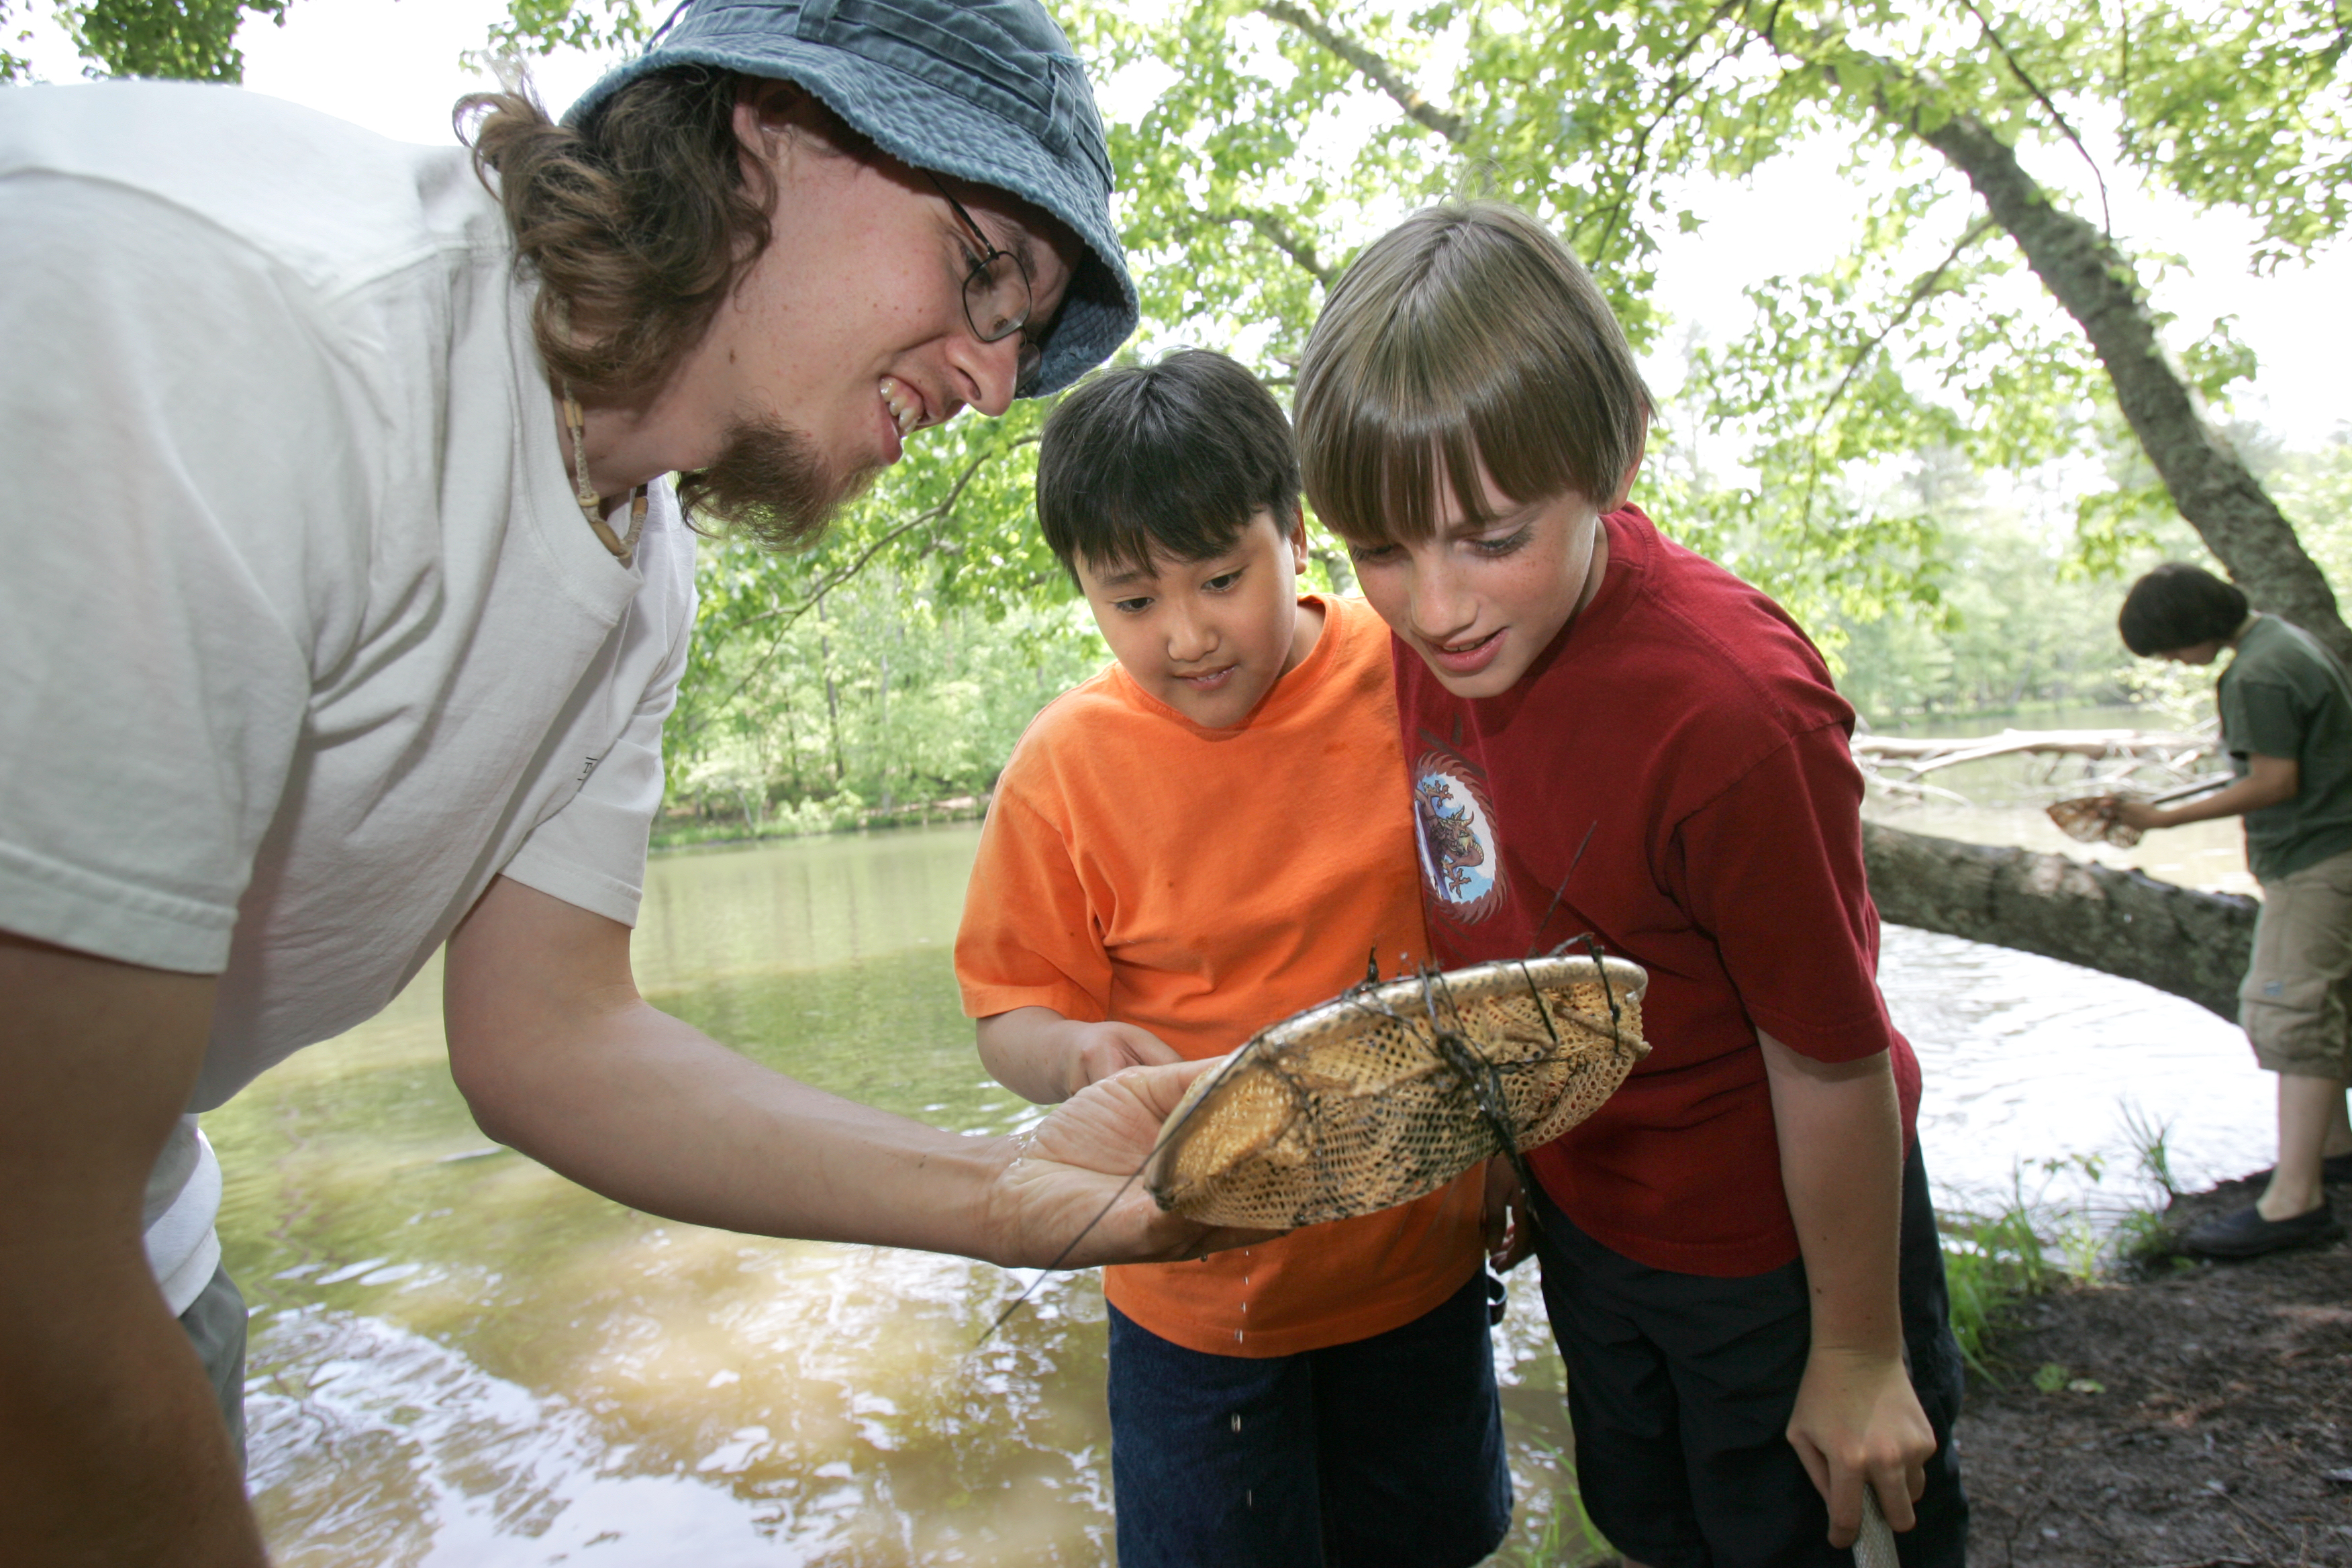 Campers at Rock Eagle 4-H Center show the contents of their net to instructor Chris Edmonds (far left) during lake ecology class during a session of Georgia 4-H camp.